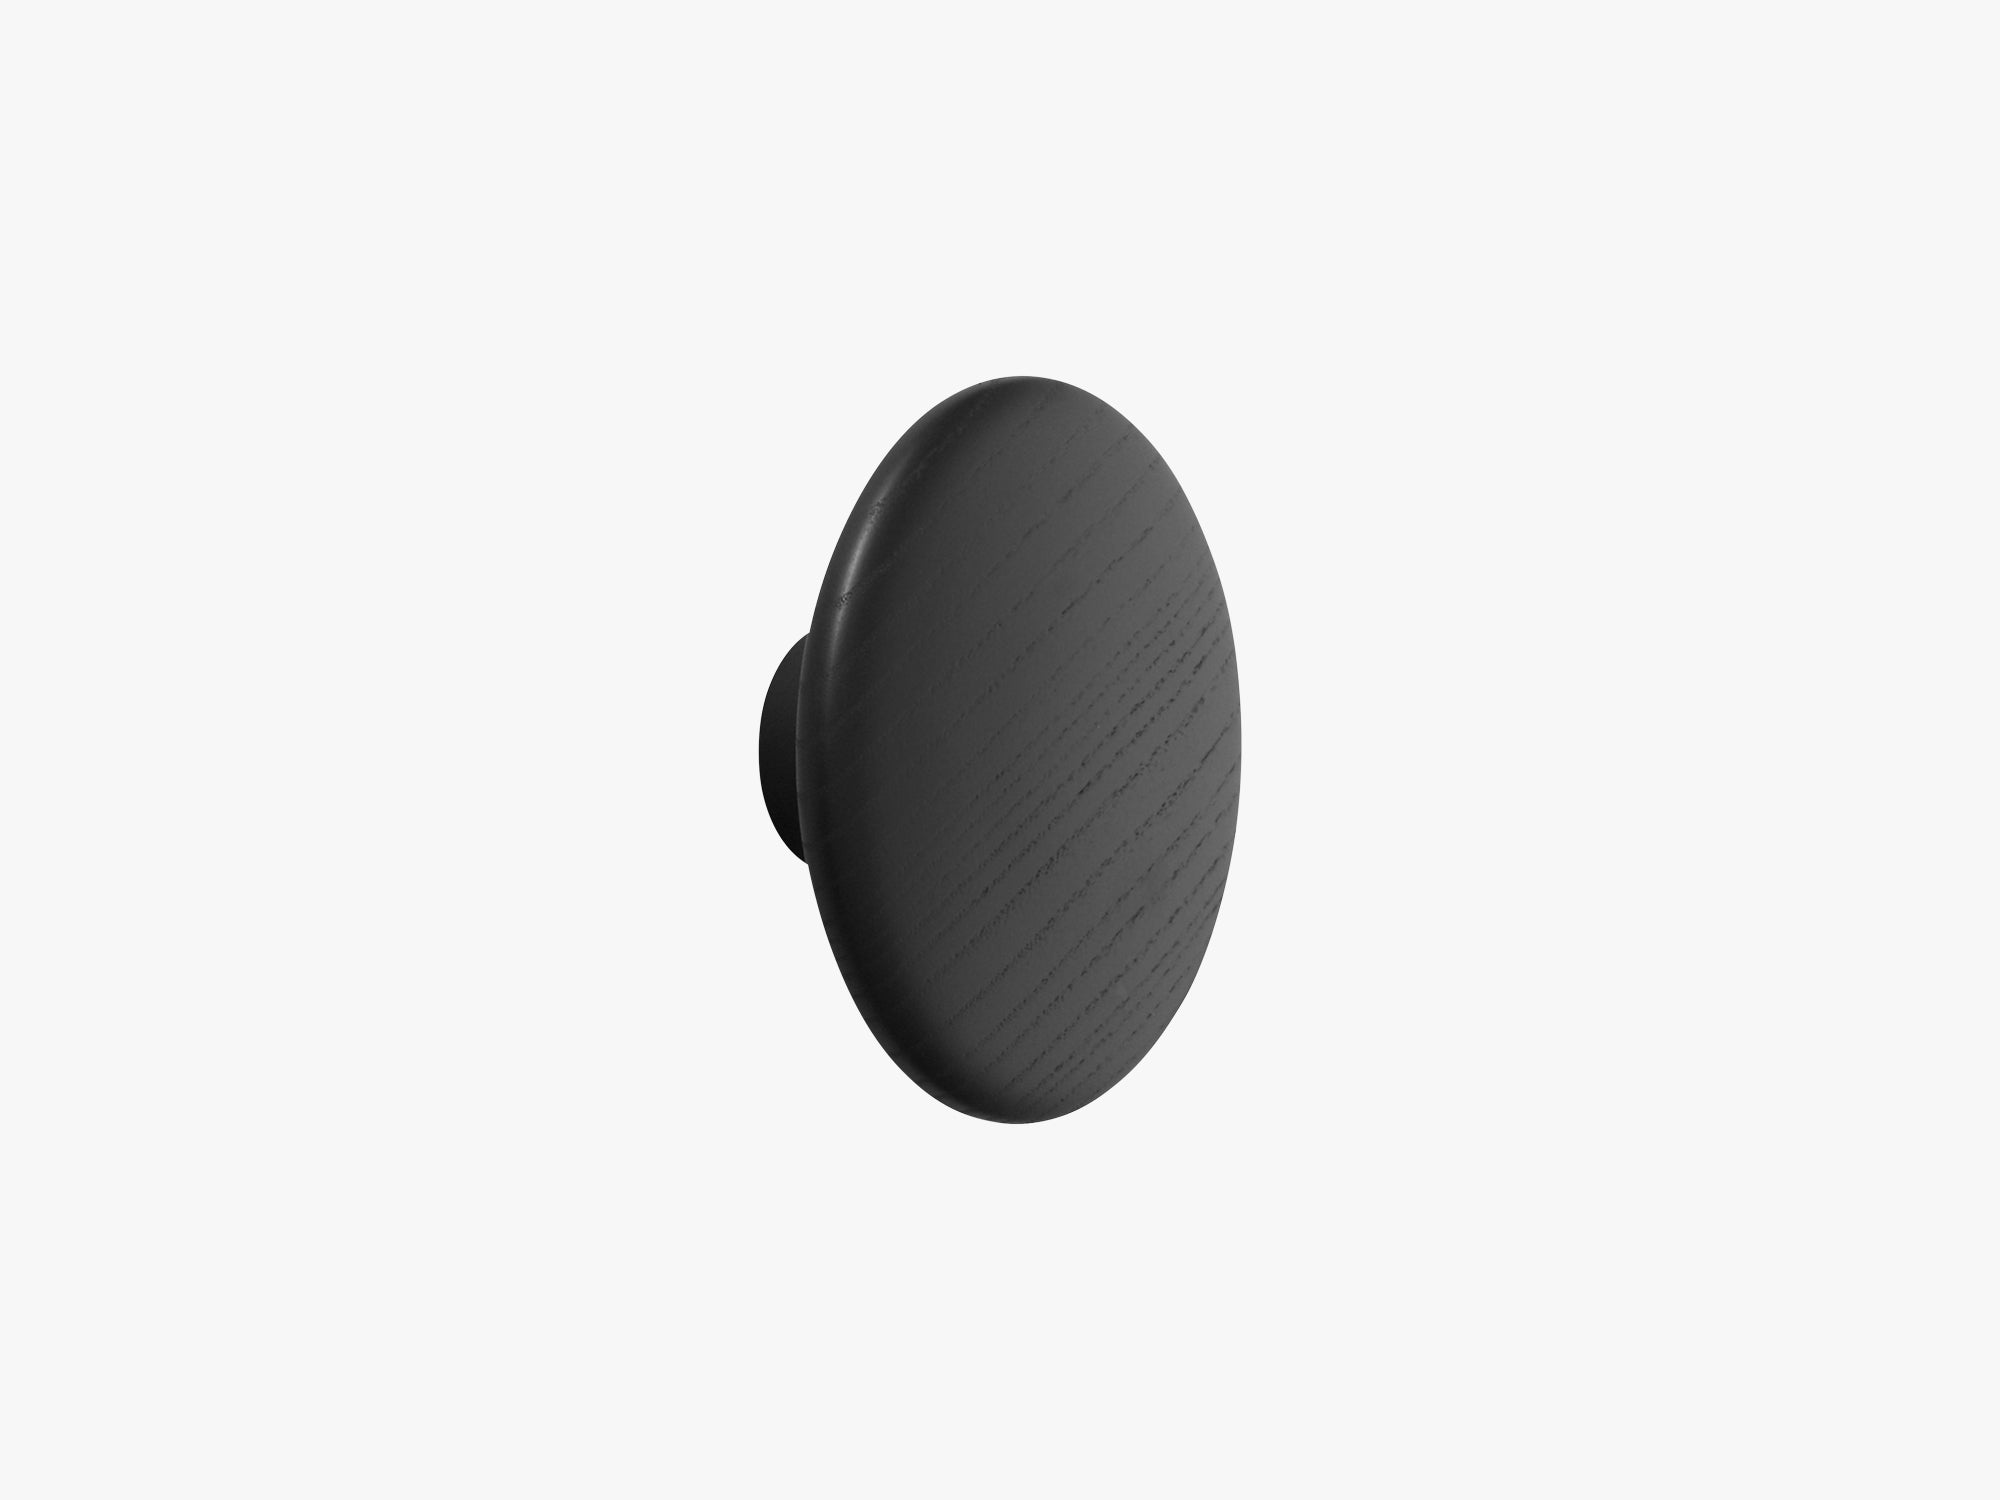 The Dots Coat Hooks / Large, Black fra Muuto